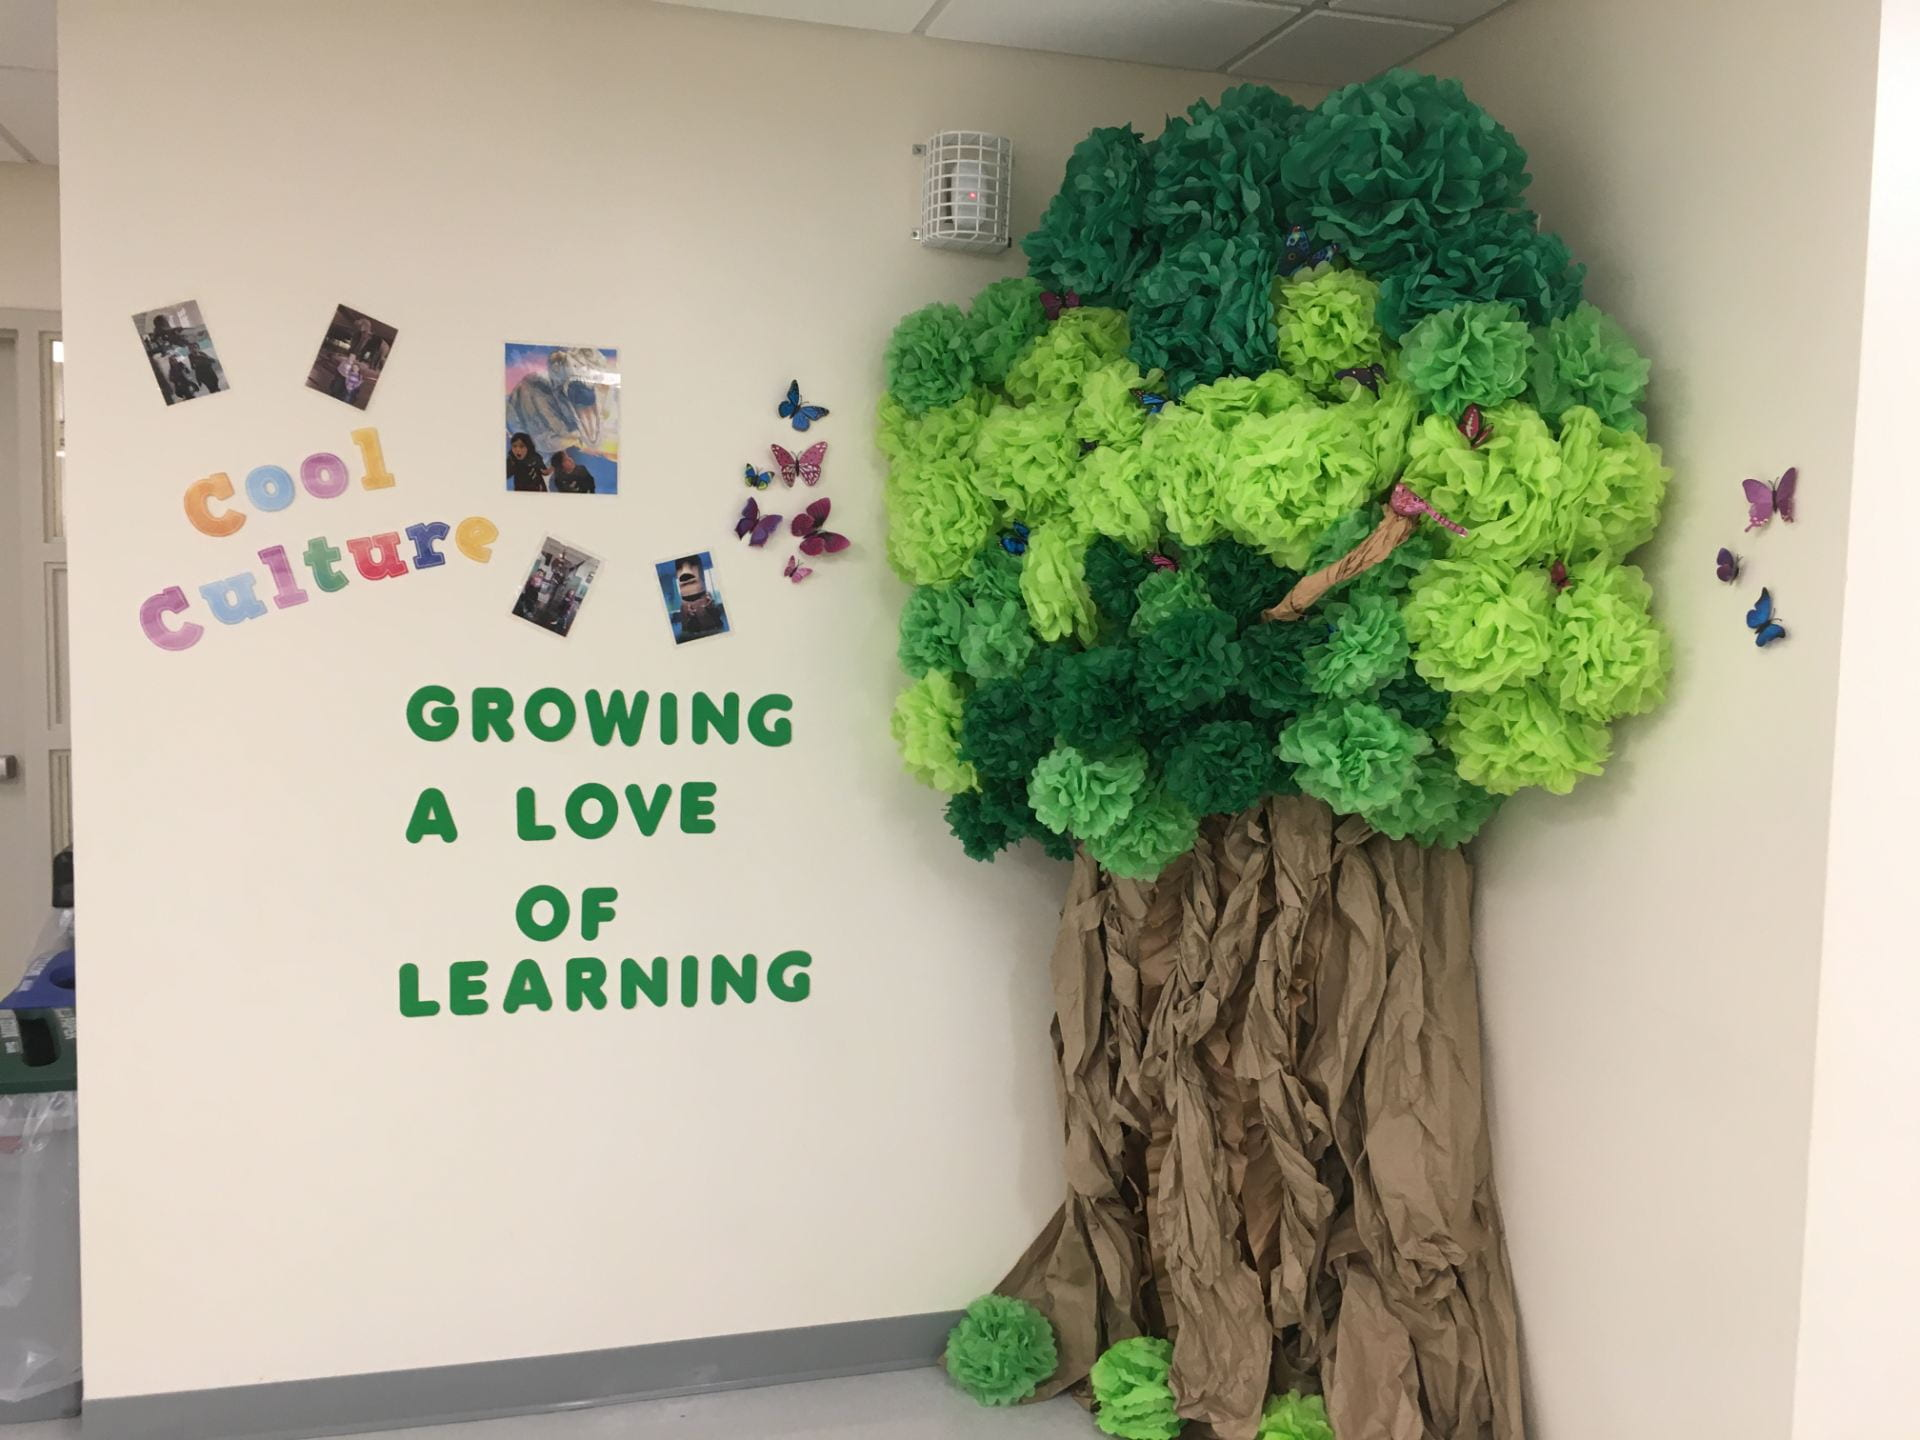 cool culture tree at the richmond prek center ebbits location